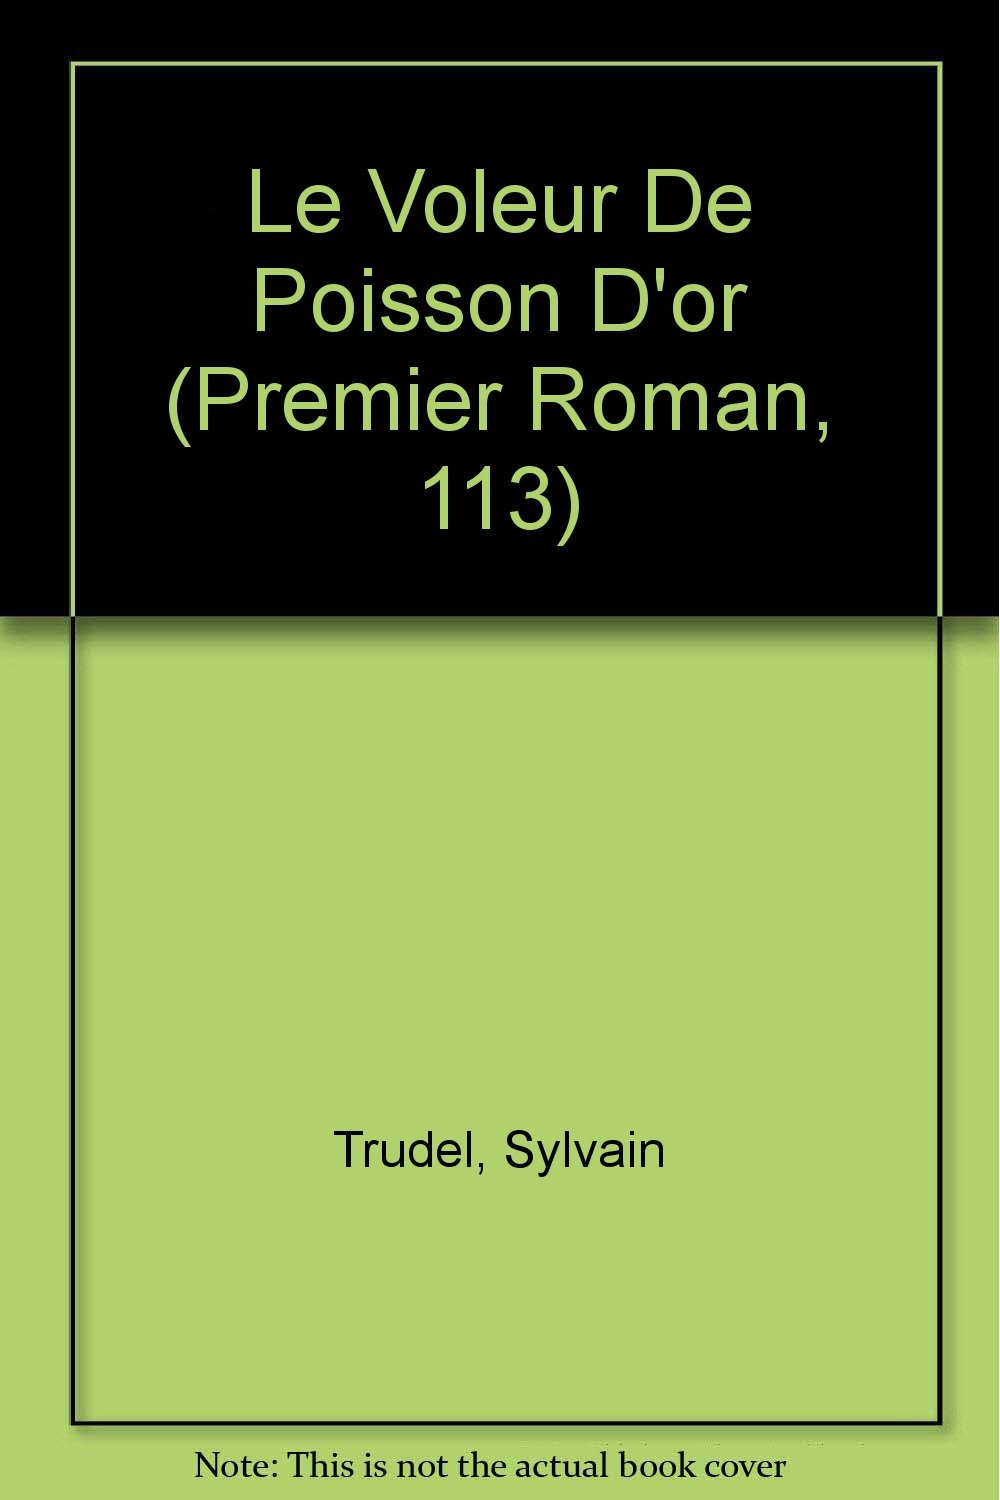 Download Le Voleur De Poisson D'or (Premier Roman, 113) (French Edition) ebook